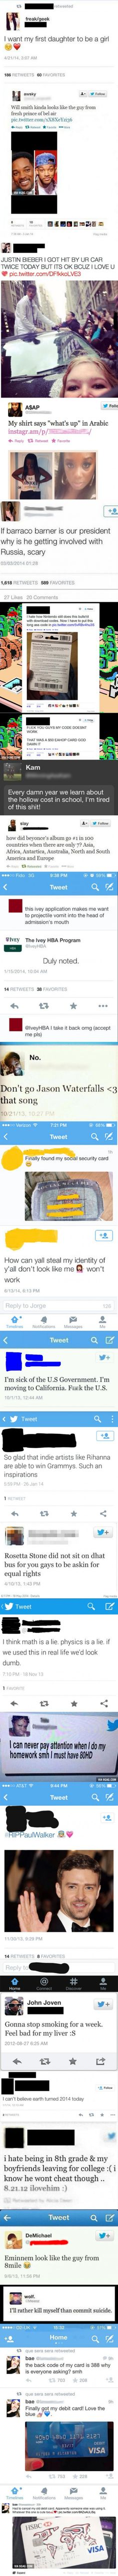 23 Of The Dumbest Tweets Ever Tweeted ----- This just cracked me up! Made my day, though!